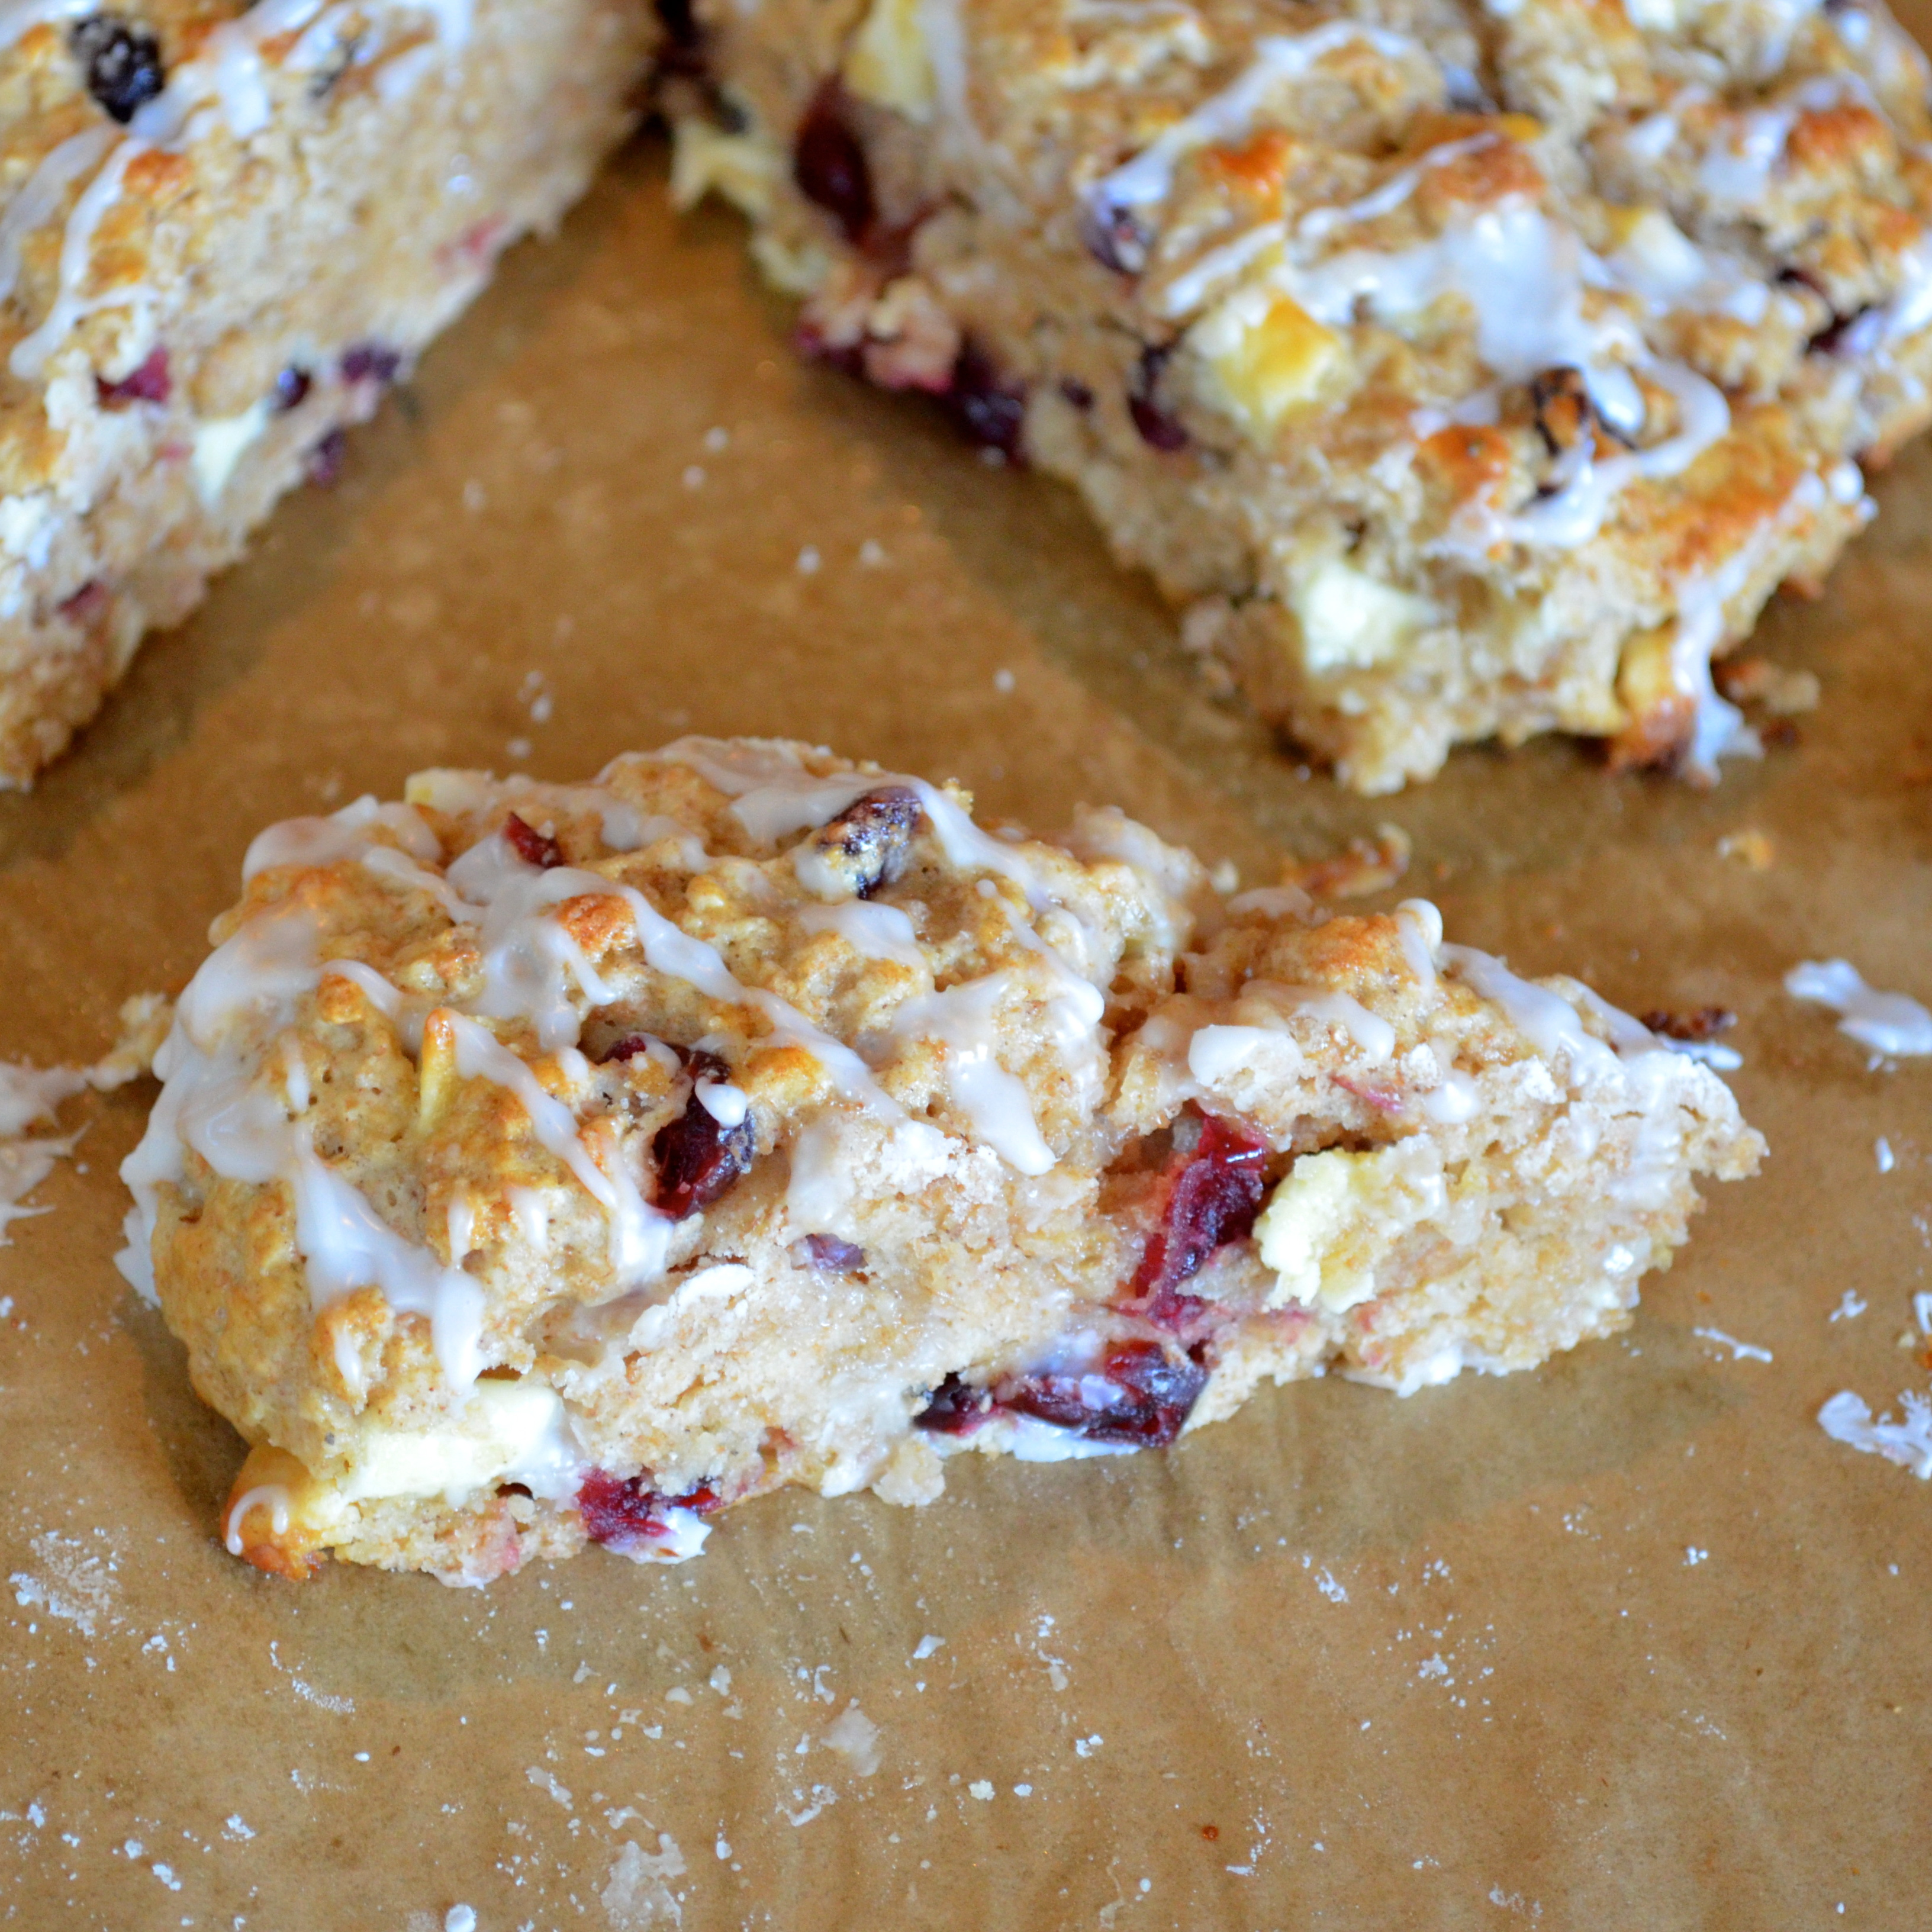 Healthier And Low Calorie Scones Filled With White Chocolate And Cranberries Super Yummy